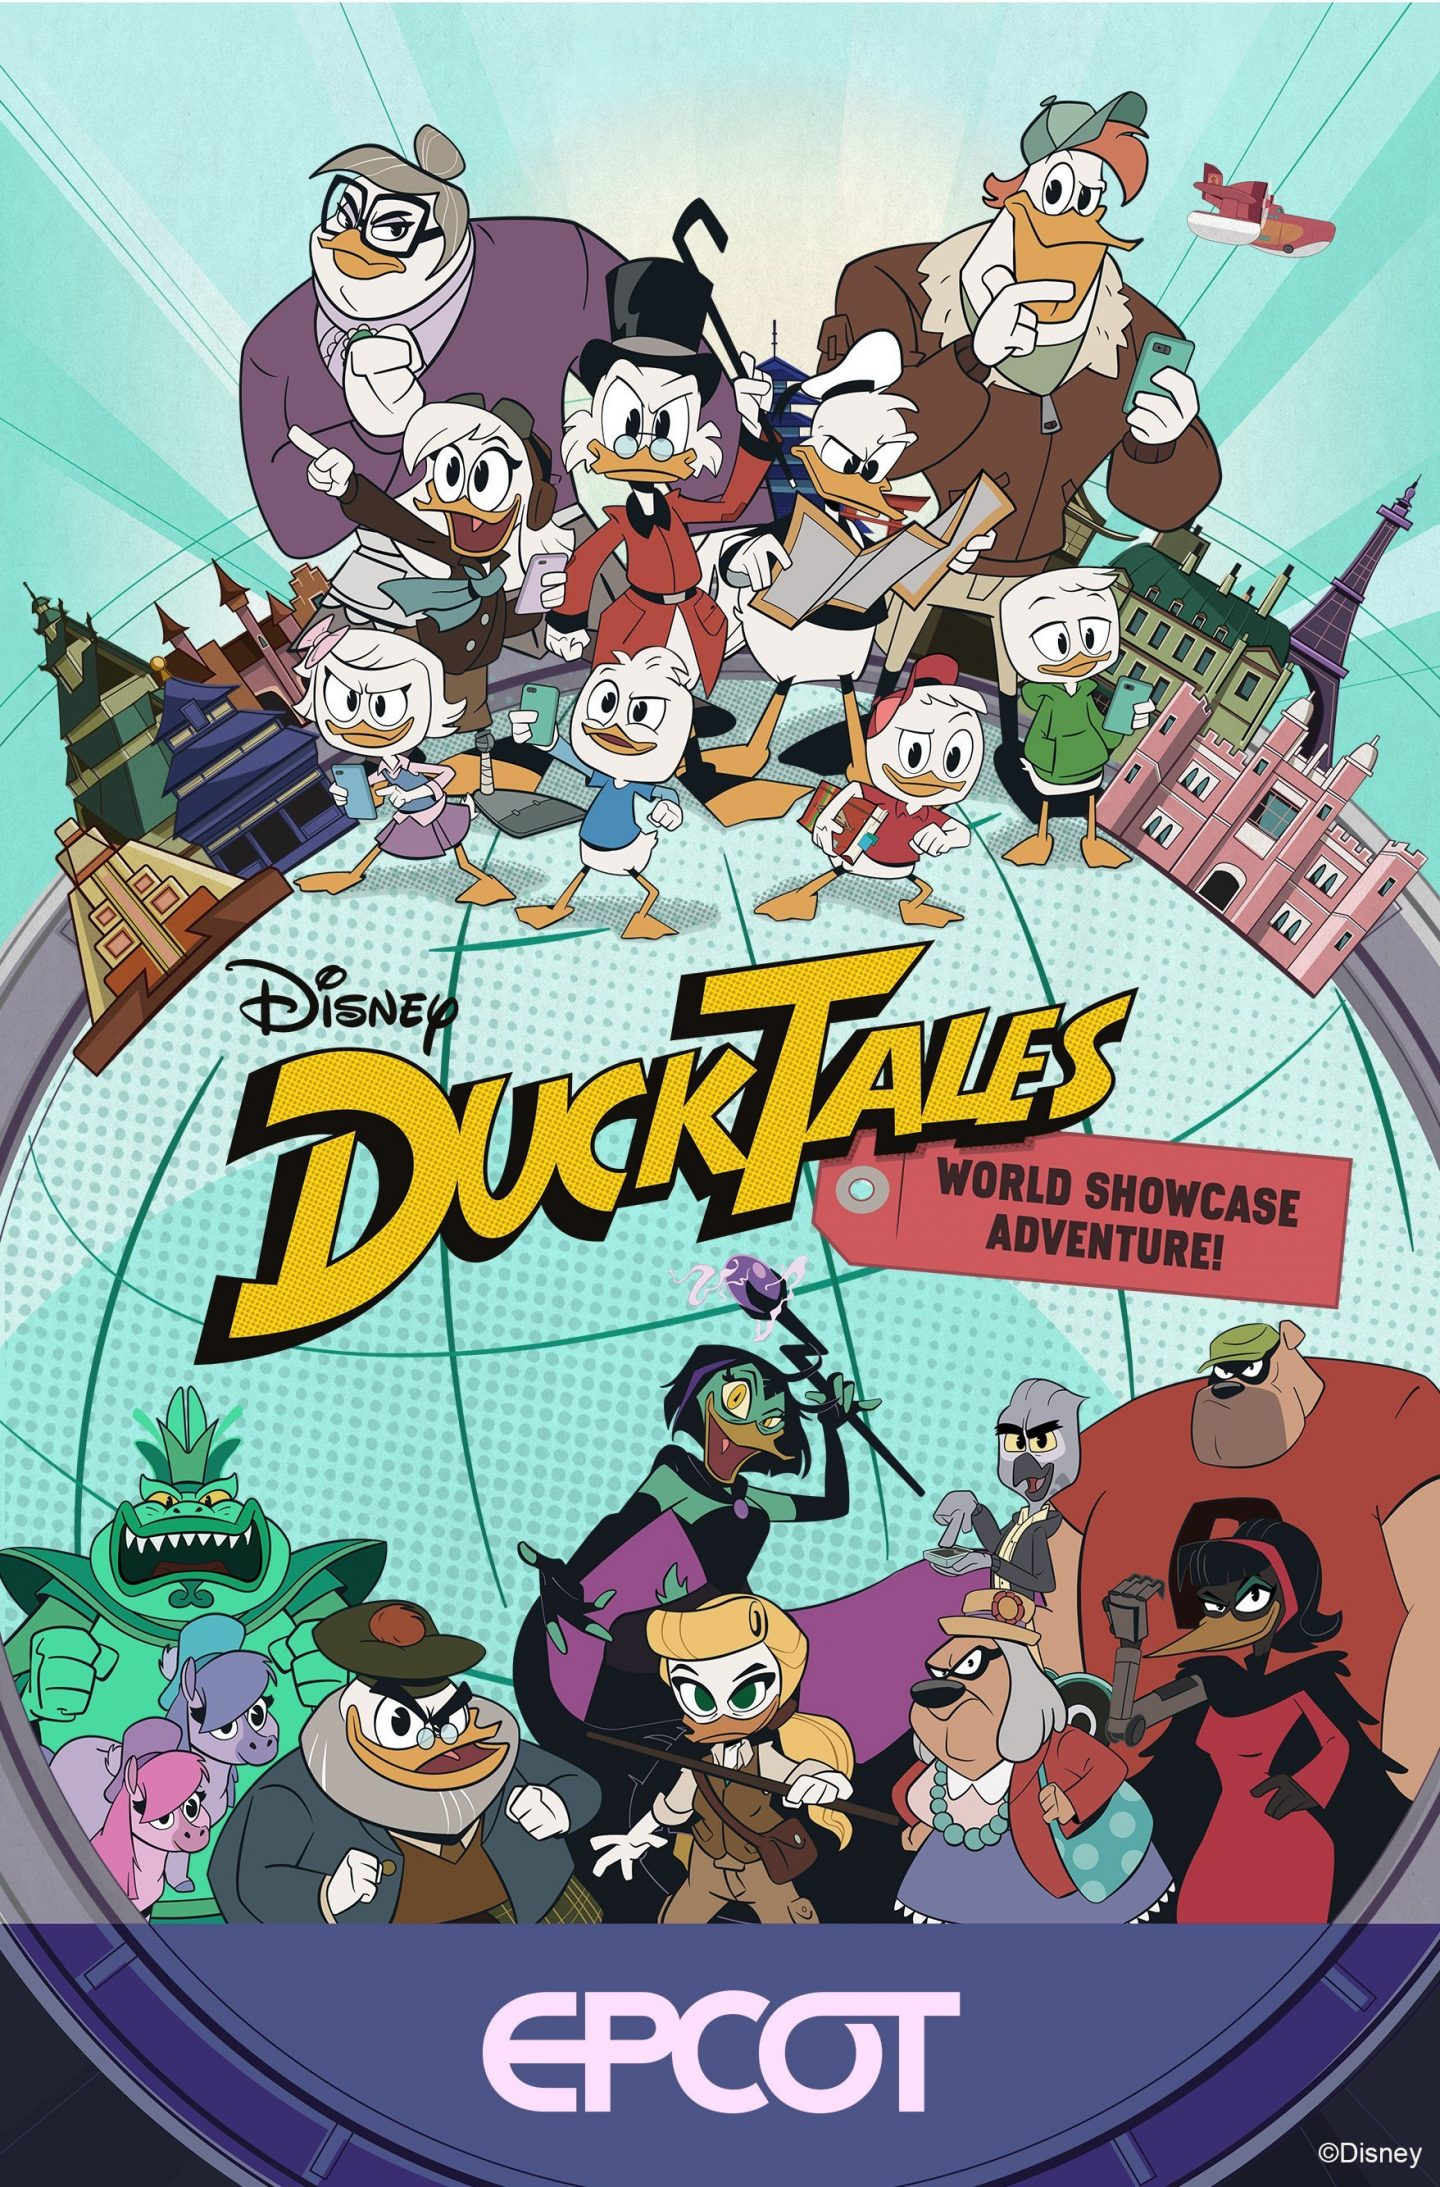 ducktales 50th Anniversary Plans at Walt Disney World